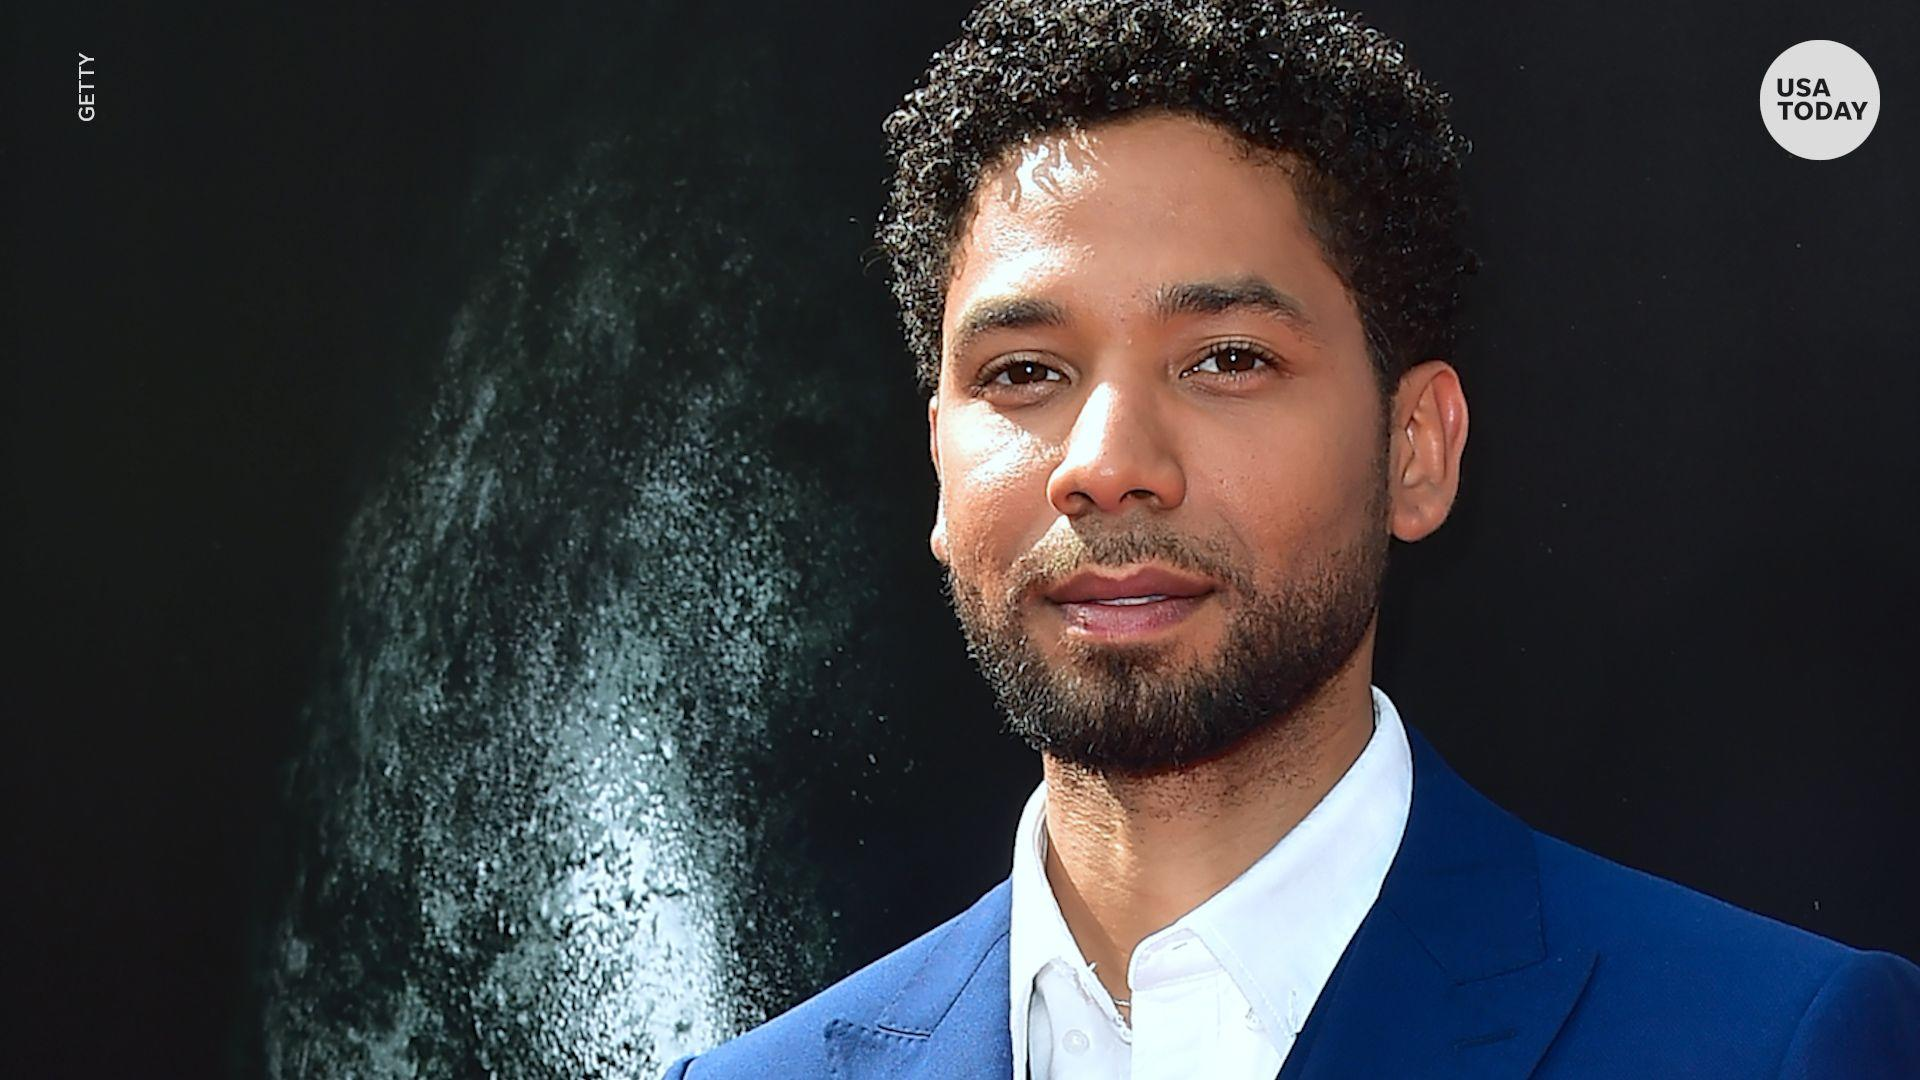 Chicago police pursue claims Jussie Smollett attack may have been faked